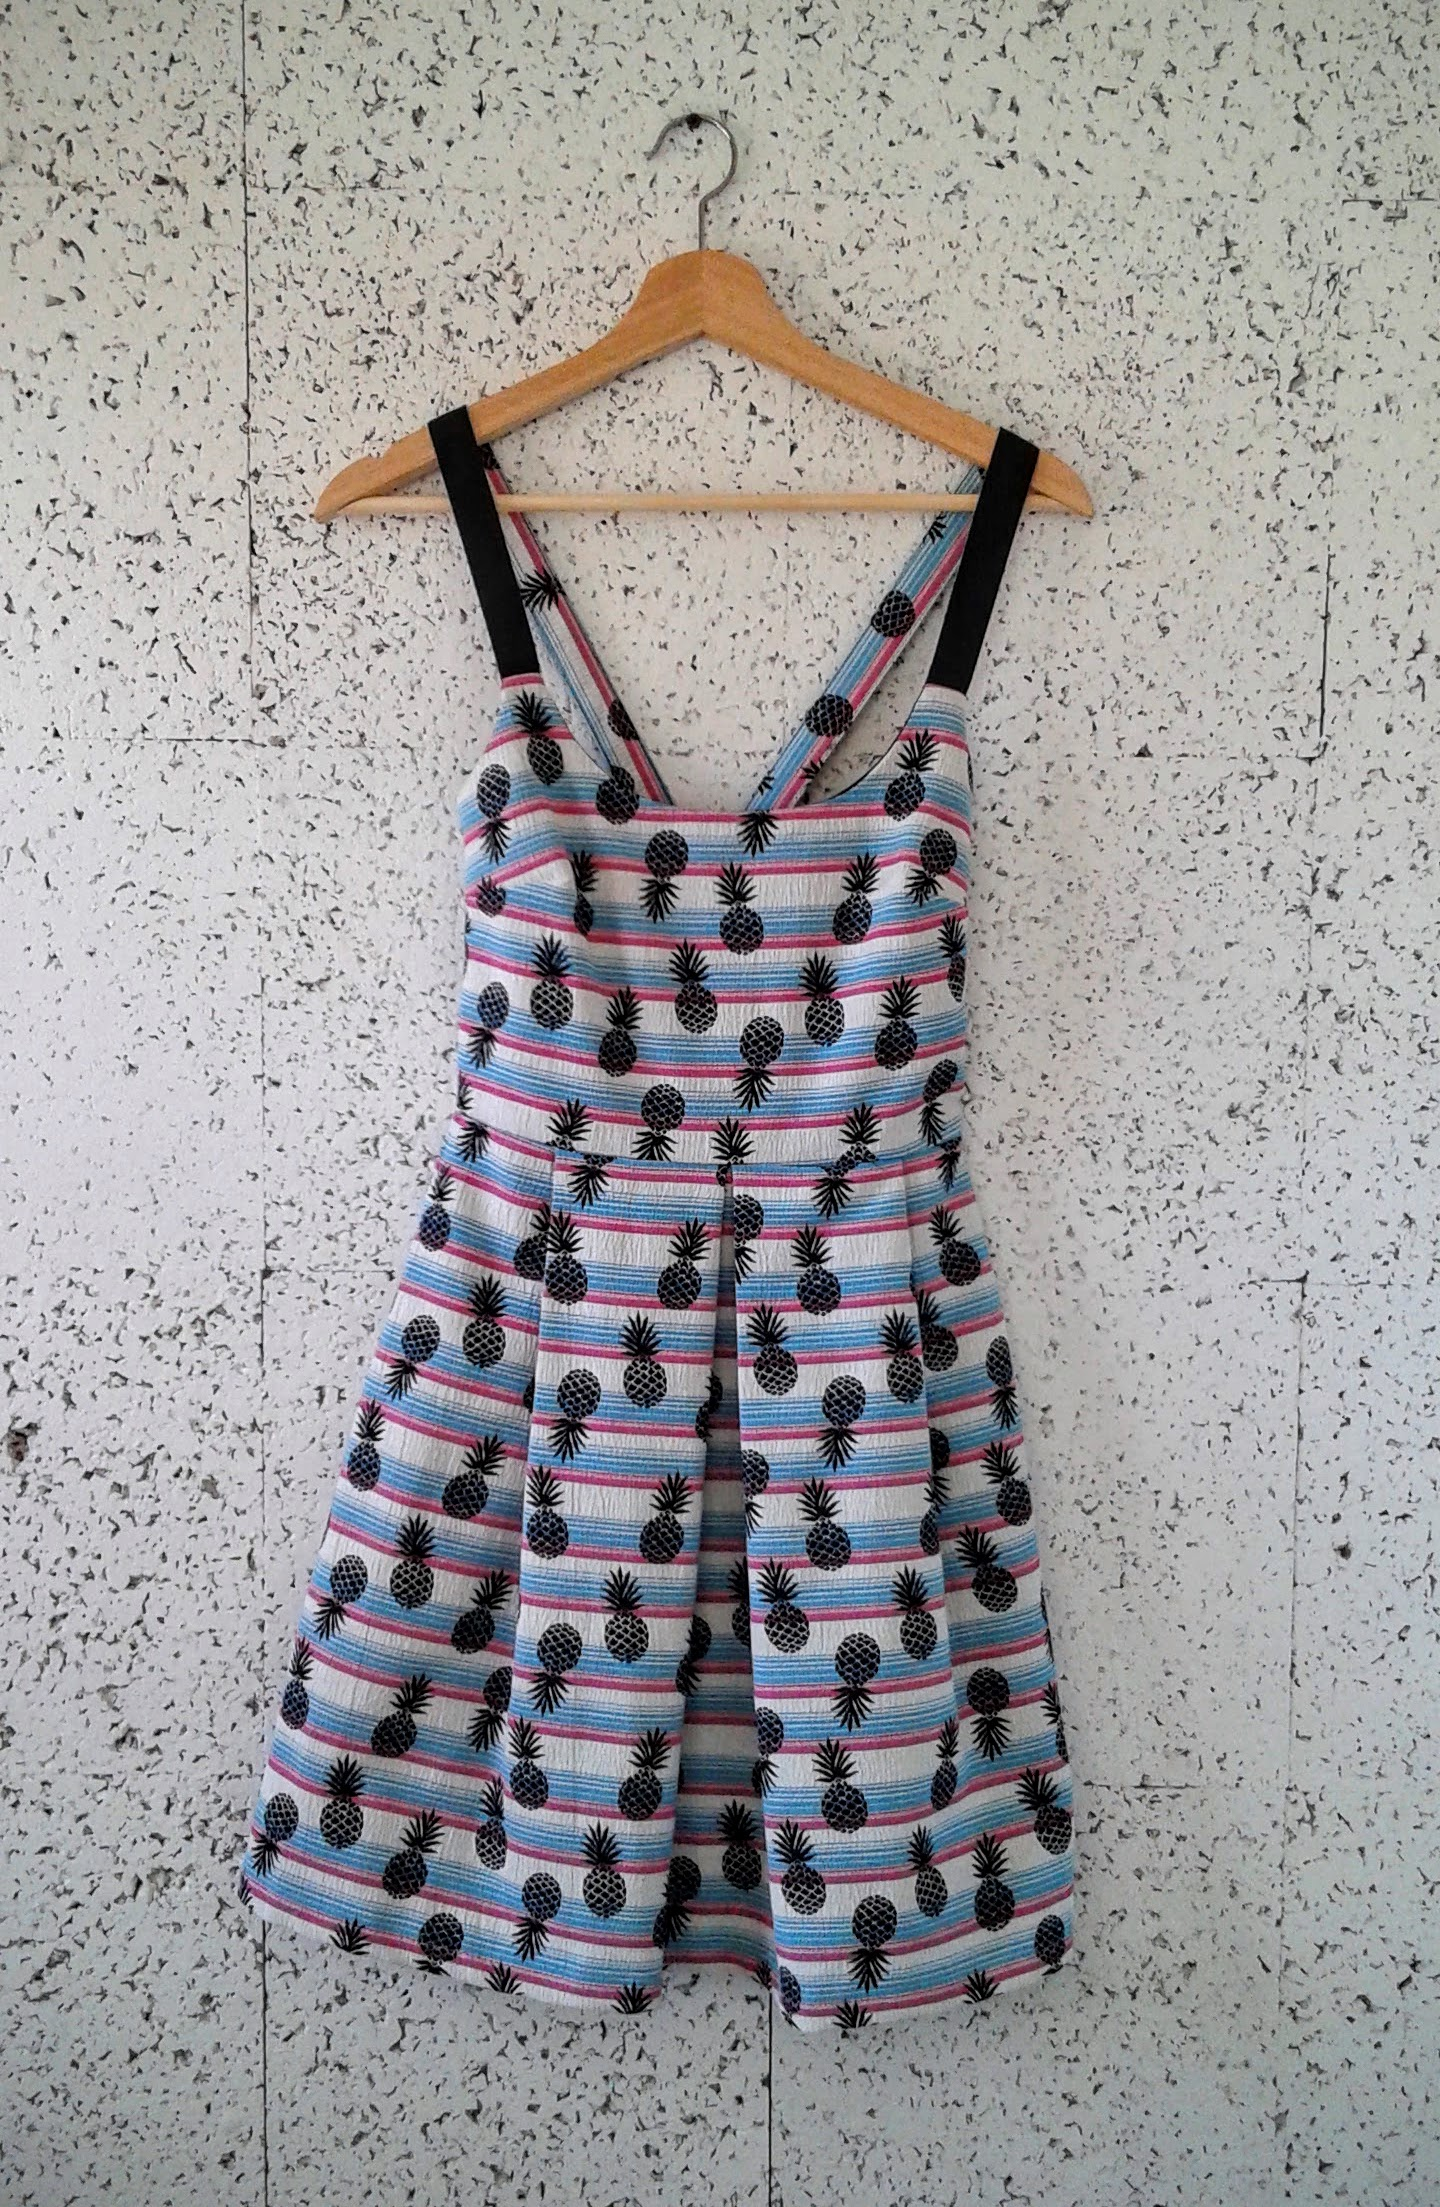 Zara dress; Size S, $30